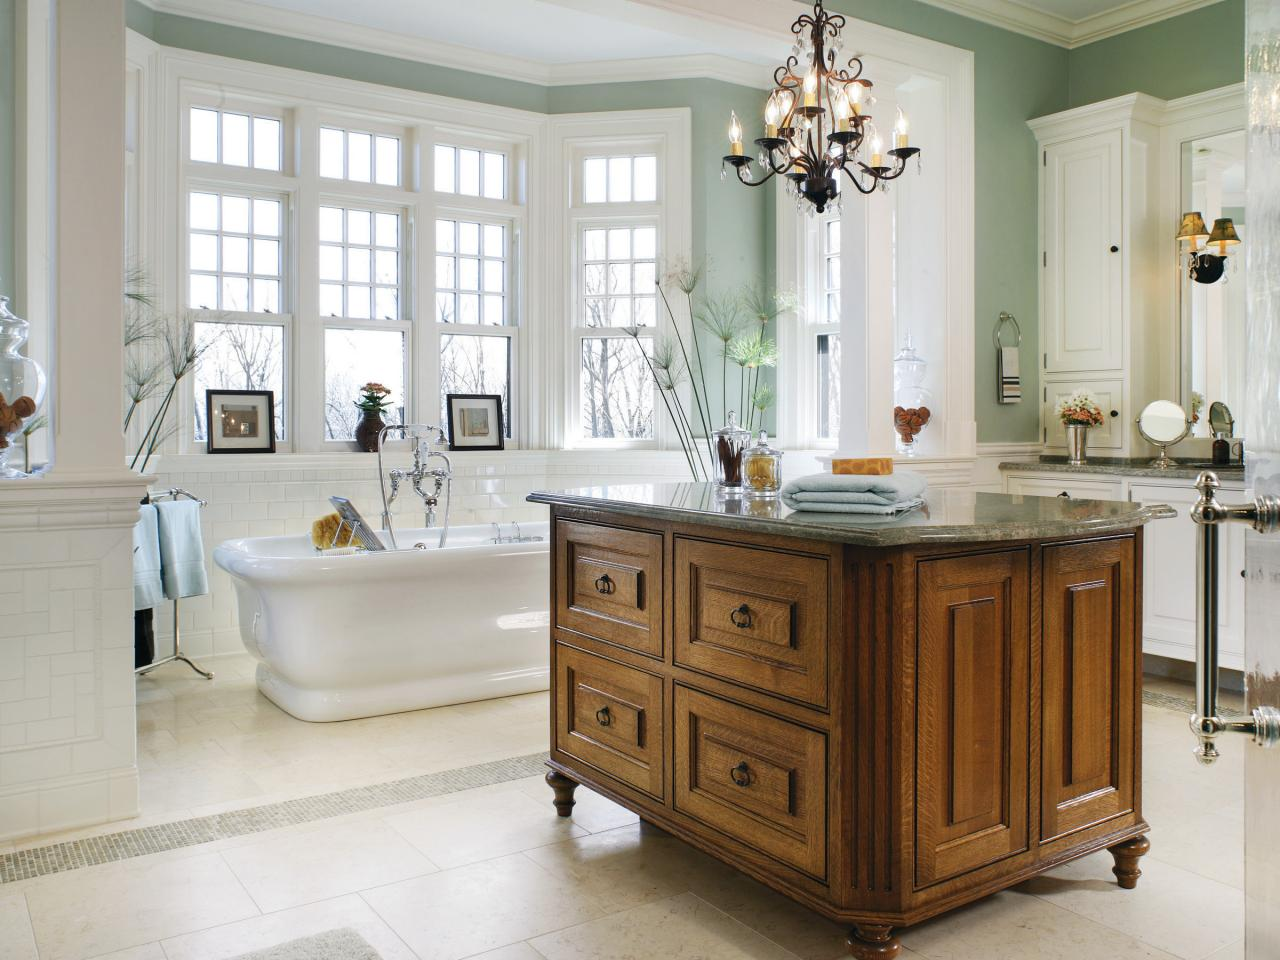 Traditional Bathroom Decorating Ideas bathroom decorating tips & ideas + pictures from hgtv | hgtv